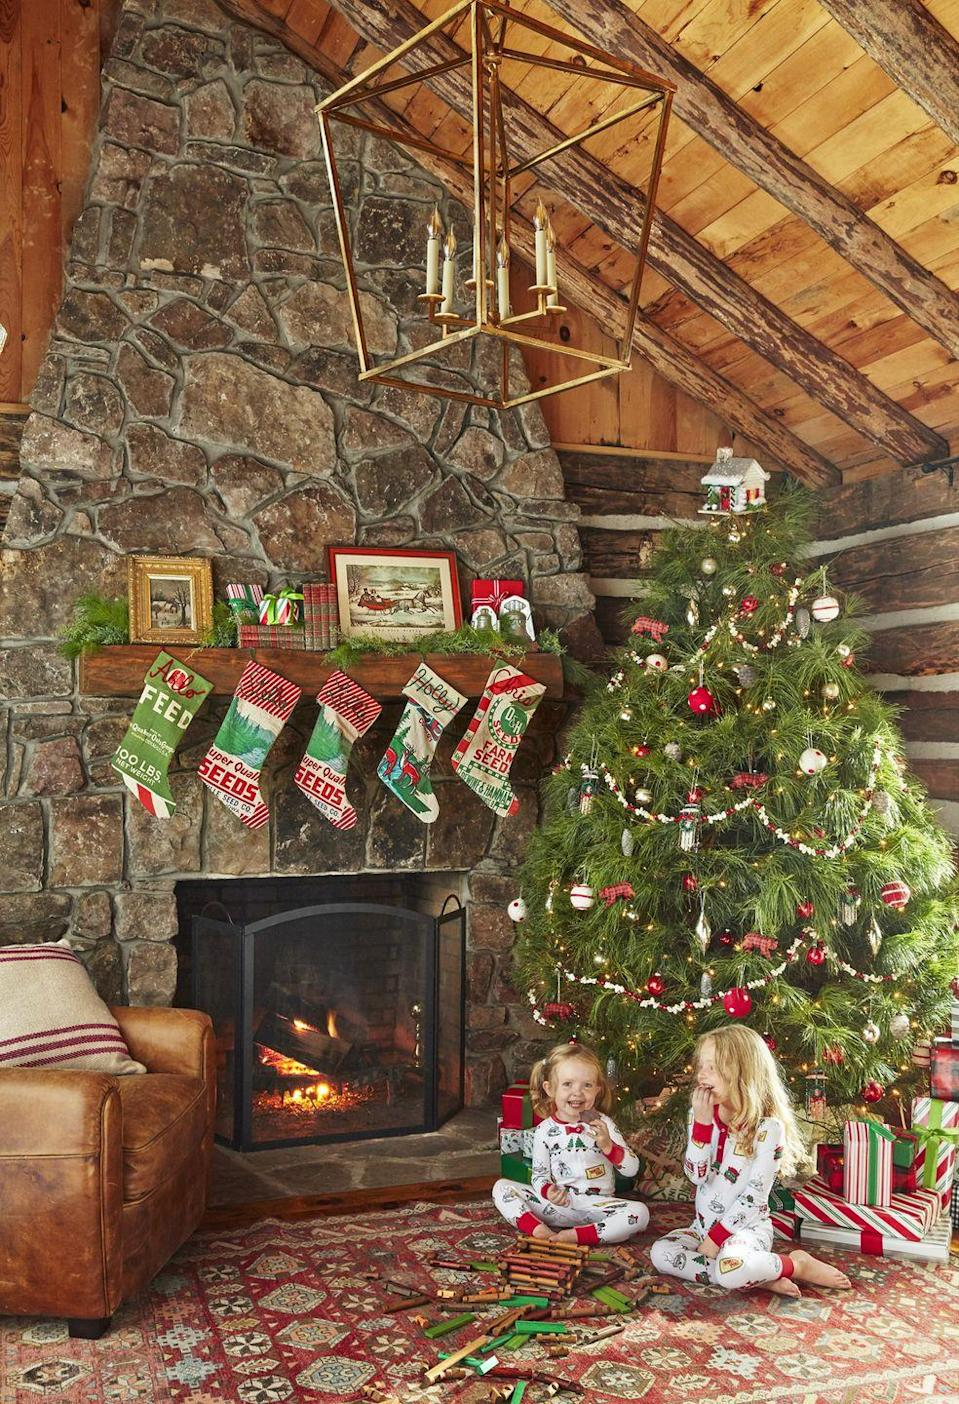 """<p>Holly's <a href=""""https://www.countryliving.com/shopping/g1407/personalized-christmas-stockings/"""" rel=""""nofollow noopener"""" target=""""_blank"""" data-ylk=""""slk:festive stockings"""" class=""""link rapid-noclick-resp"""">festive stockings</a>, made from seed sacks and monogrammed with yarn, conjure the same handcrafted spirit as the pioneer-built cabin. Similarly, the <a href=""""https://www.countryliving.com/diy-crafts/how-to/g1545/christmas-tree-toppers/"""" rel=""""nofollow noopener"""" target=""""_blank"""" data-ylk=""""slk:tree topper"""" class=""""link rapid-noclick-resp"""">tree topper</a>—a hand-constructed cabin—champions a DIY spirit. </p><p><a class=""""link rapid-noclick-resp"""" href=""""https://www.amazon.com/Aitey-Christmas-Character-Decorations-Accessory/dp/B075XK8XD8?tag=syn-yahoo-20&ascsubtag=%5Bartid%7C10050.g.1247%5Bsrc%7Cyahoo-us"""" rel=""""nofollow noopener"""" target=""""_blank"""" data-ylk=""""slk:SHOP STOCKINGS"""">SHOP STOCKINGS</a></p>"""